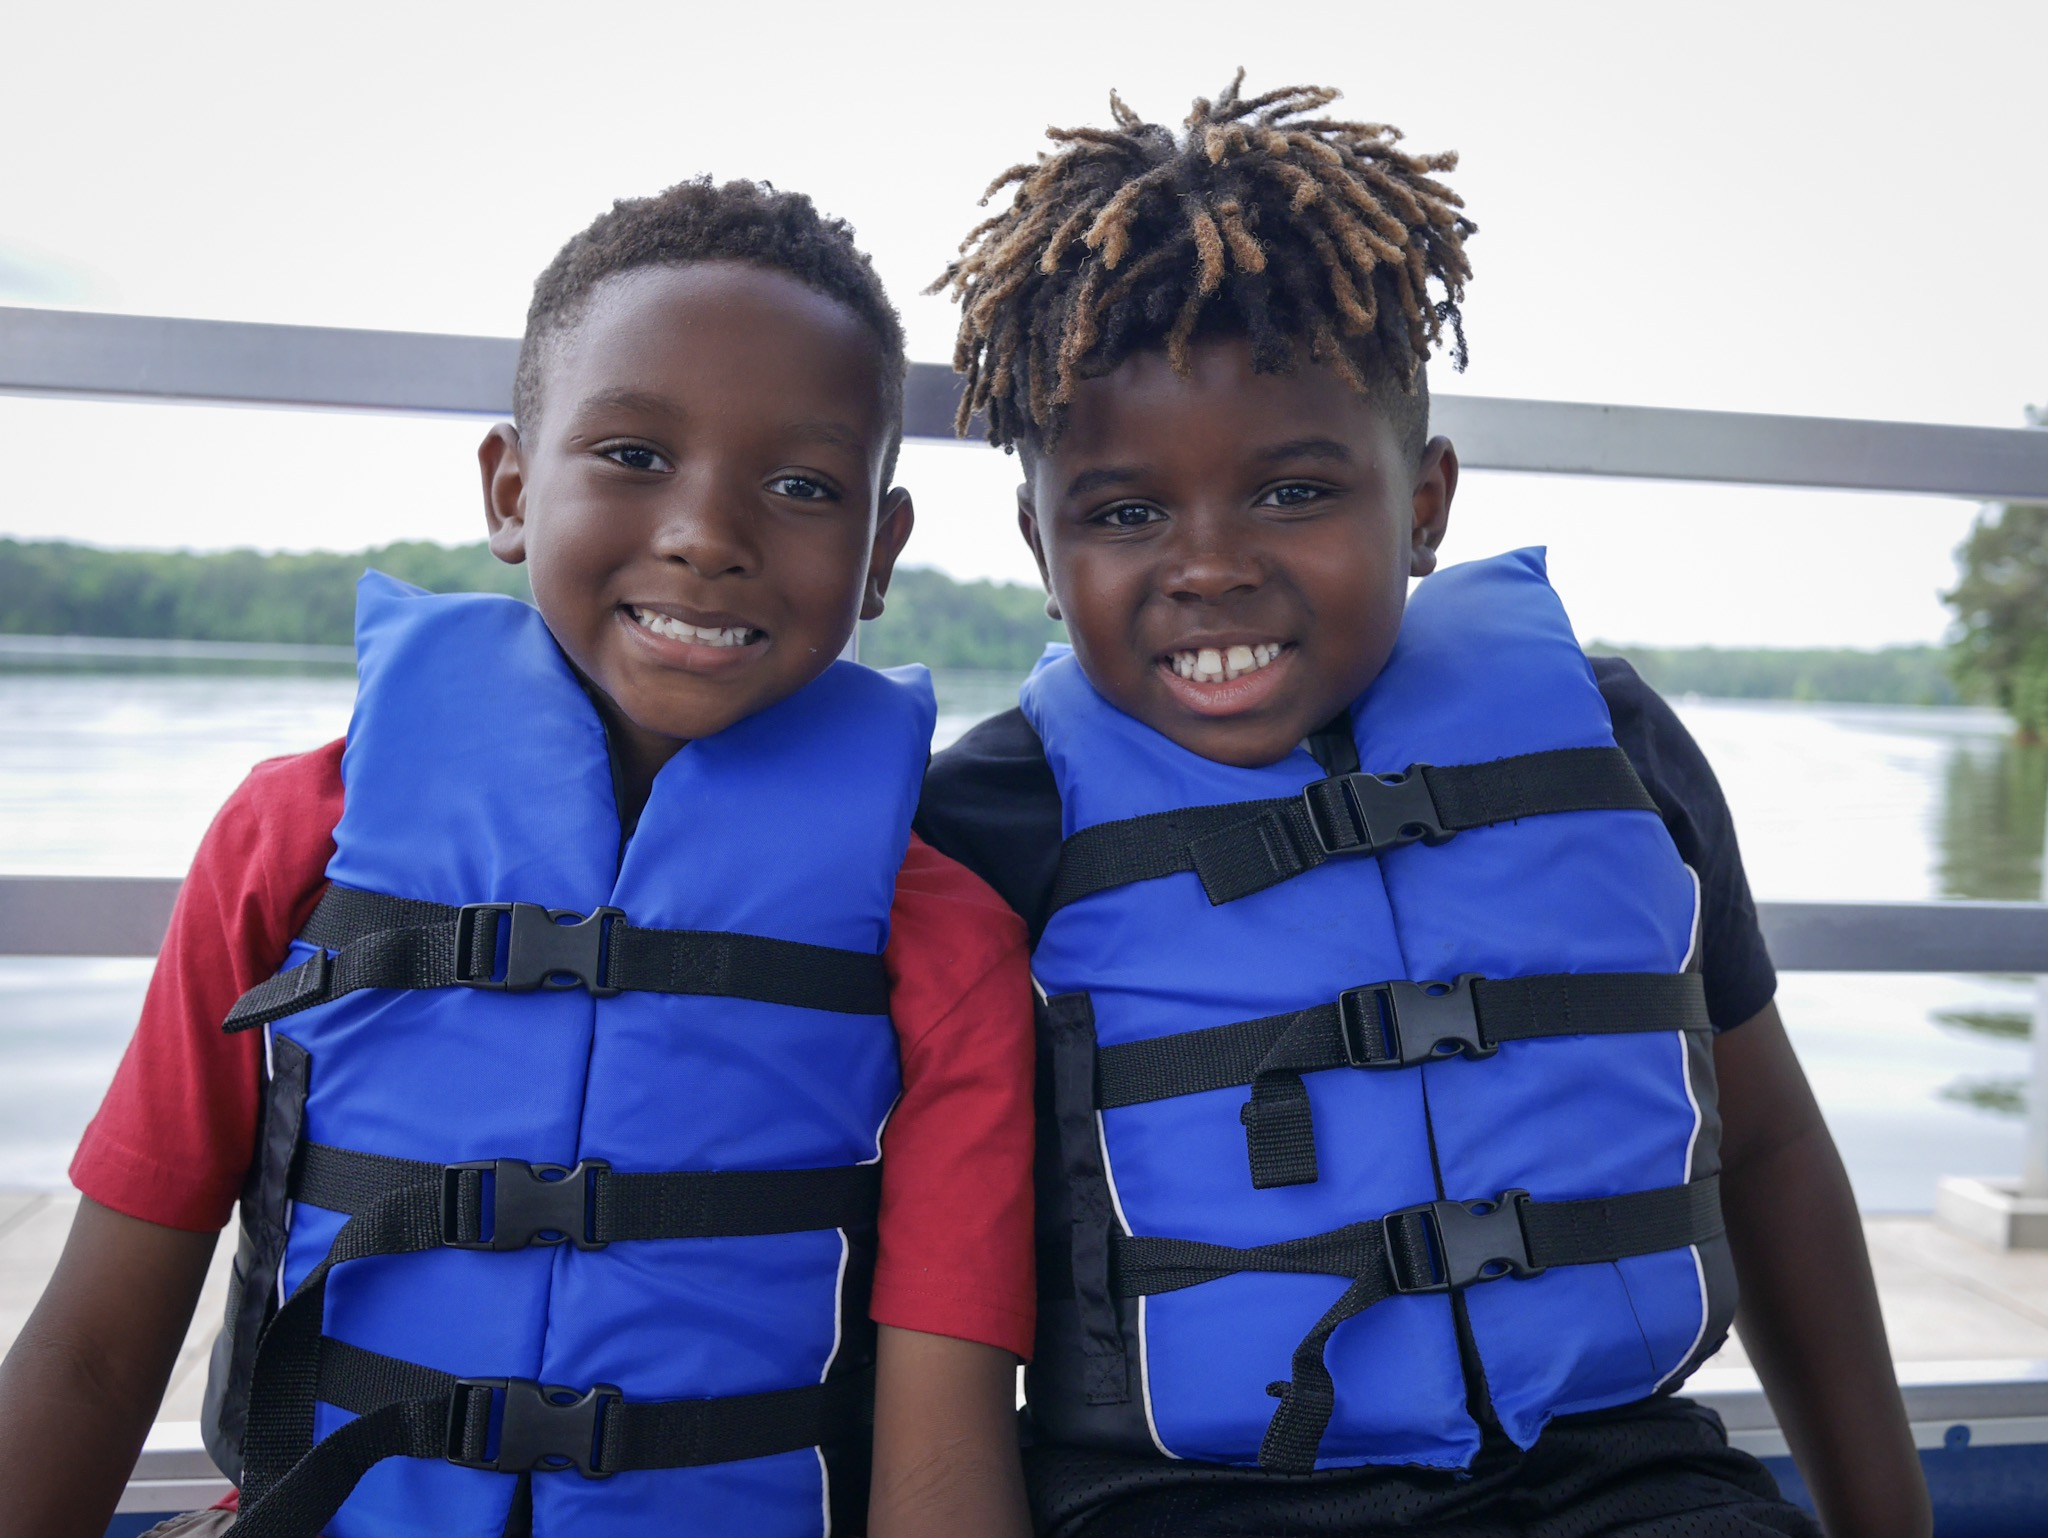 Two children in lifejackets on boats smile